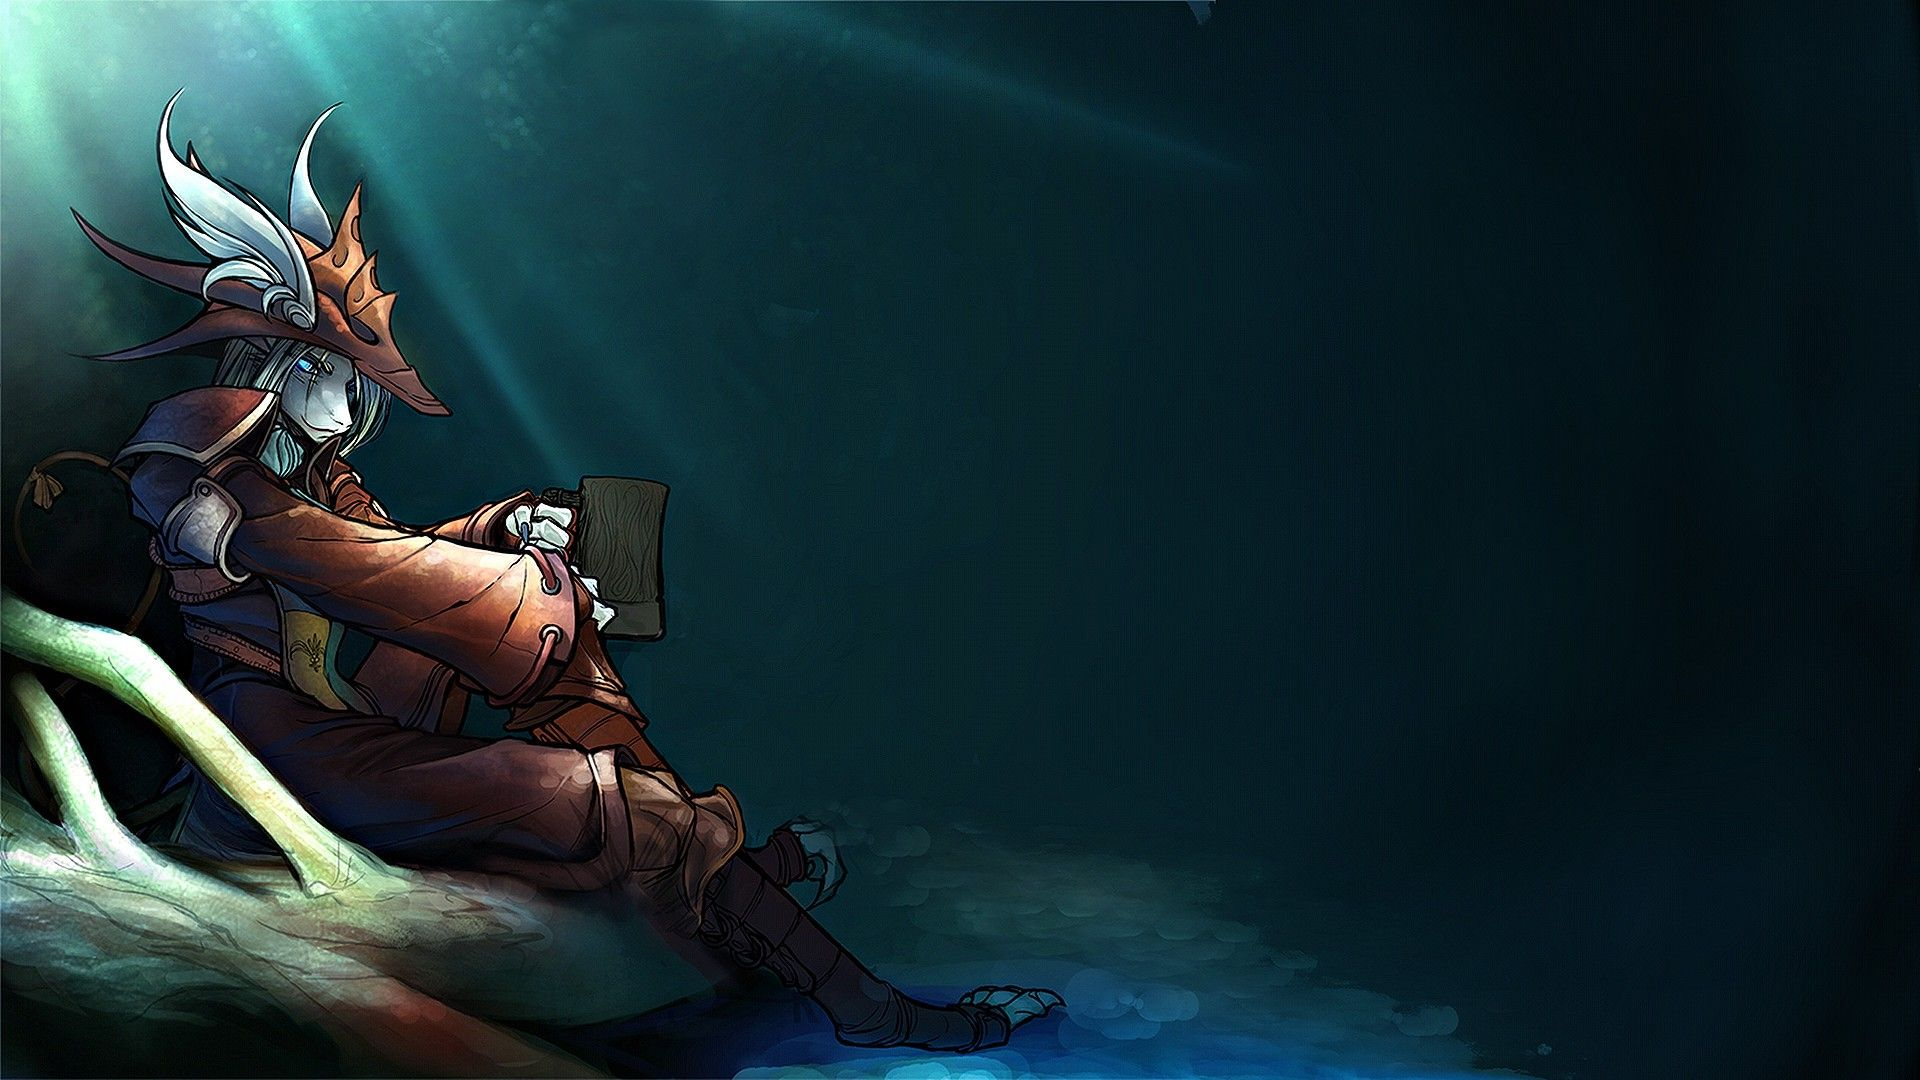 Final Fantasy IX - Freya | Wallpapers | Final fantasy, Final